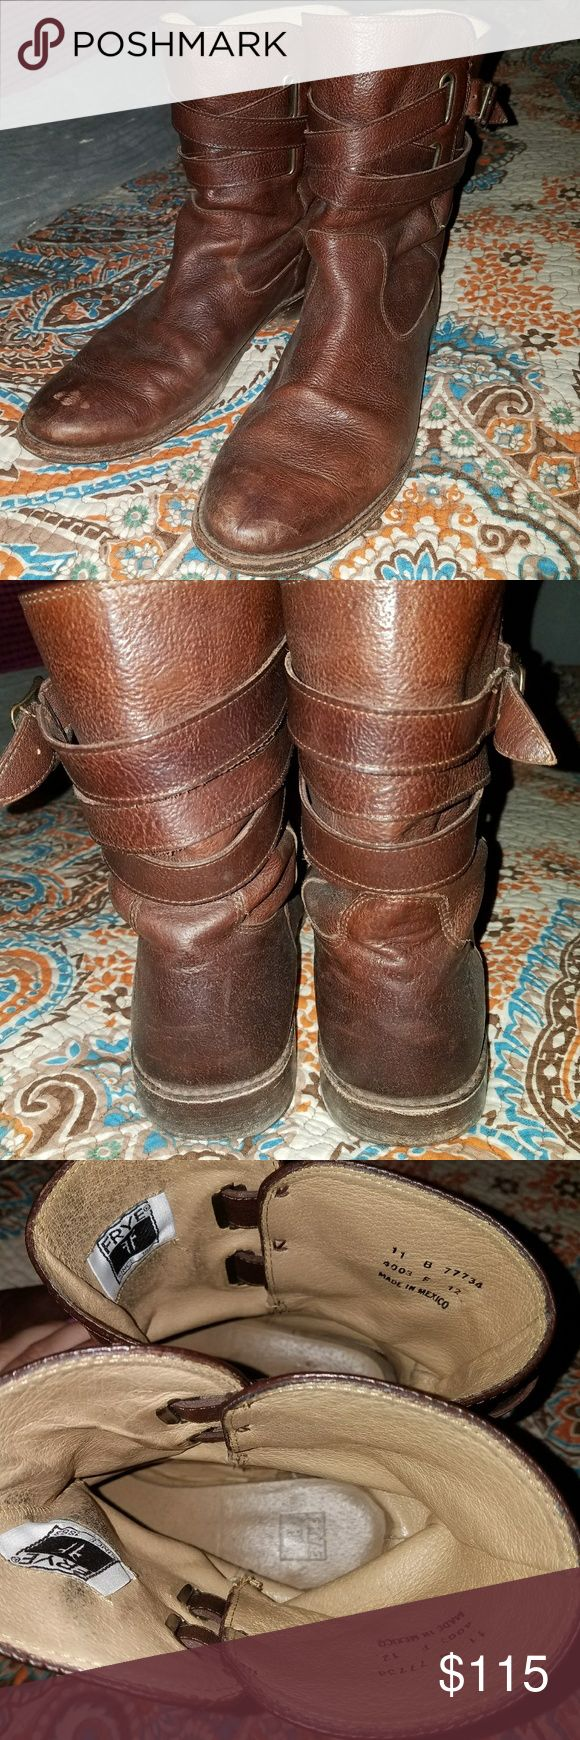 Frye Harness Boots Women's Frye Harness Boots size 12 Rare Styling from Frye Genuine leather Great condition Frye Shoes Ankle Boots & Booties